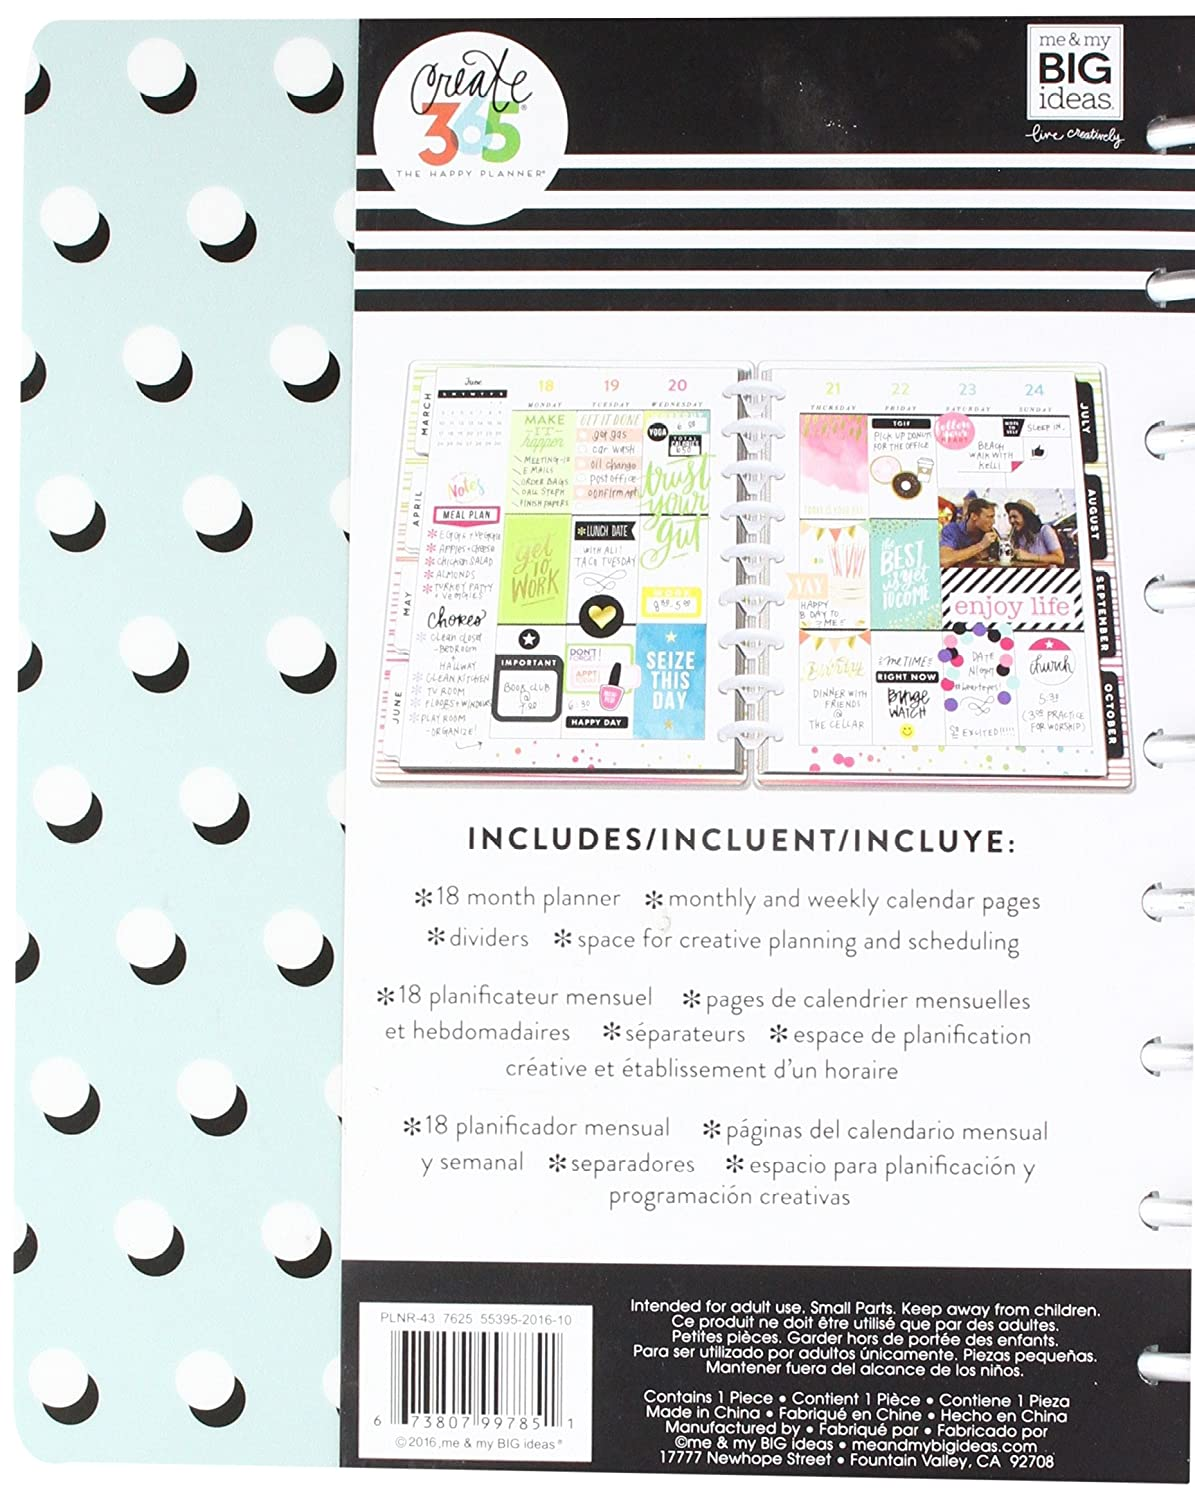 Me & My Big Ideas Classic Planner - A Well Crafted Life, Standard, Teal White Polka Dots